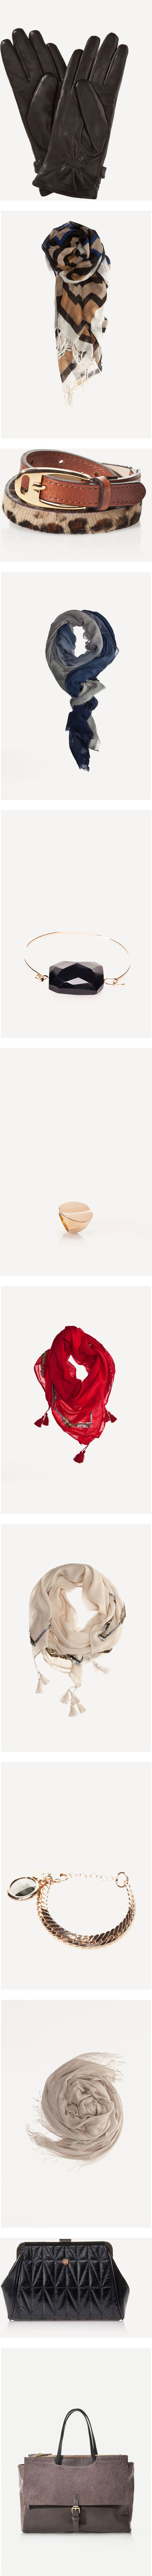 """""""Accessories"""" by massimodutti ❤ liked on Polyvore"""